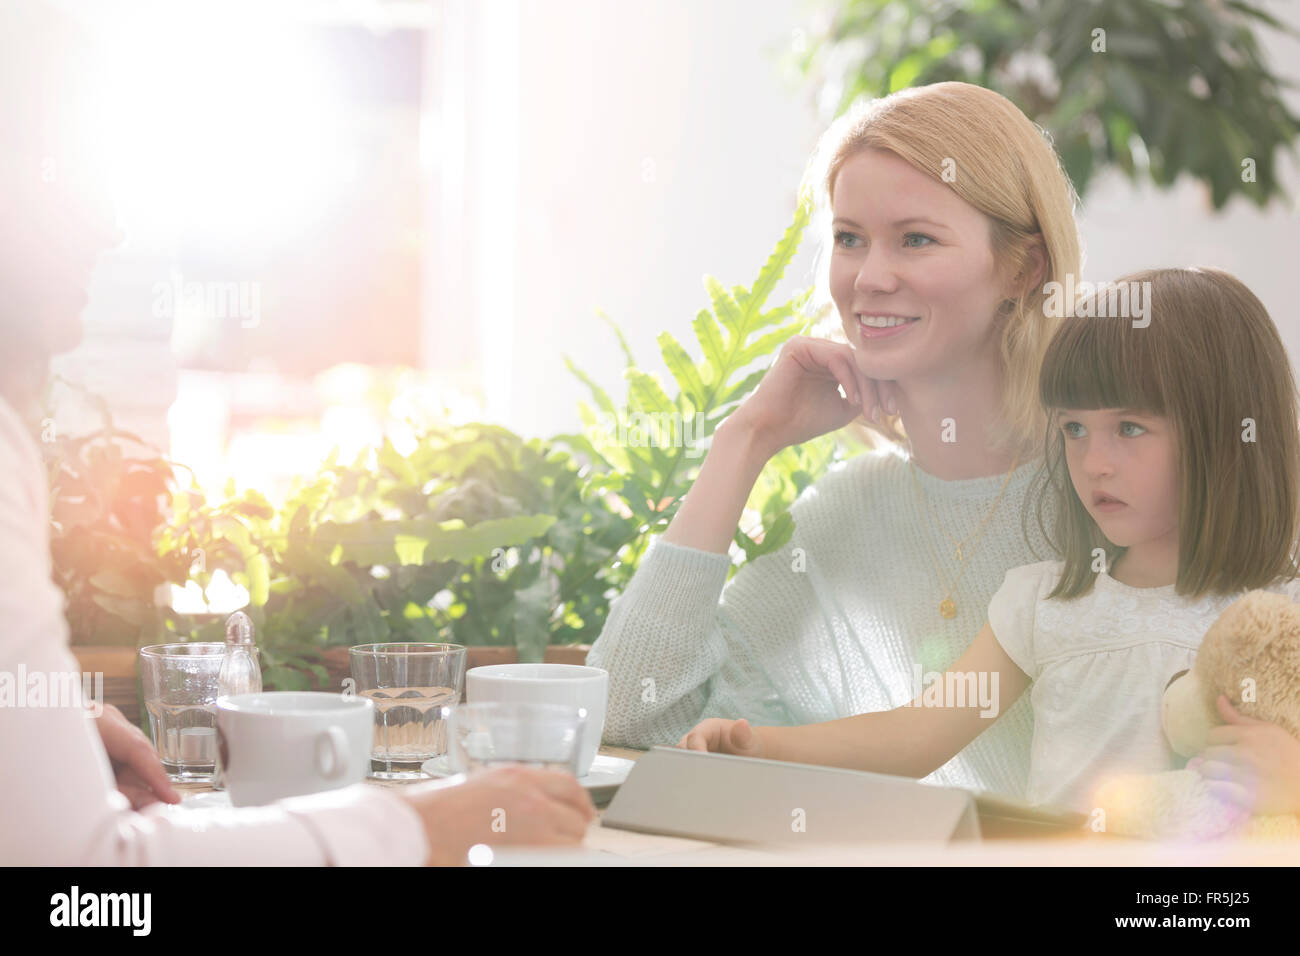 Family at cafe table - Stock Image